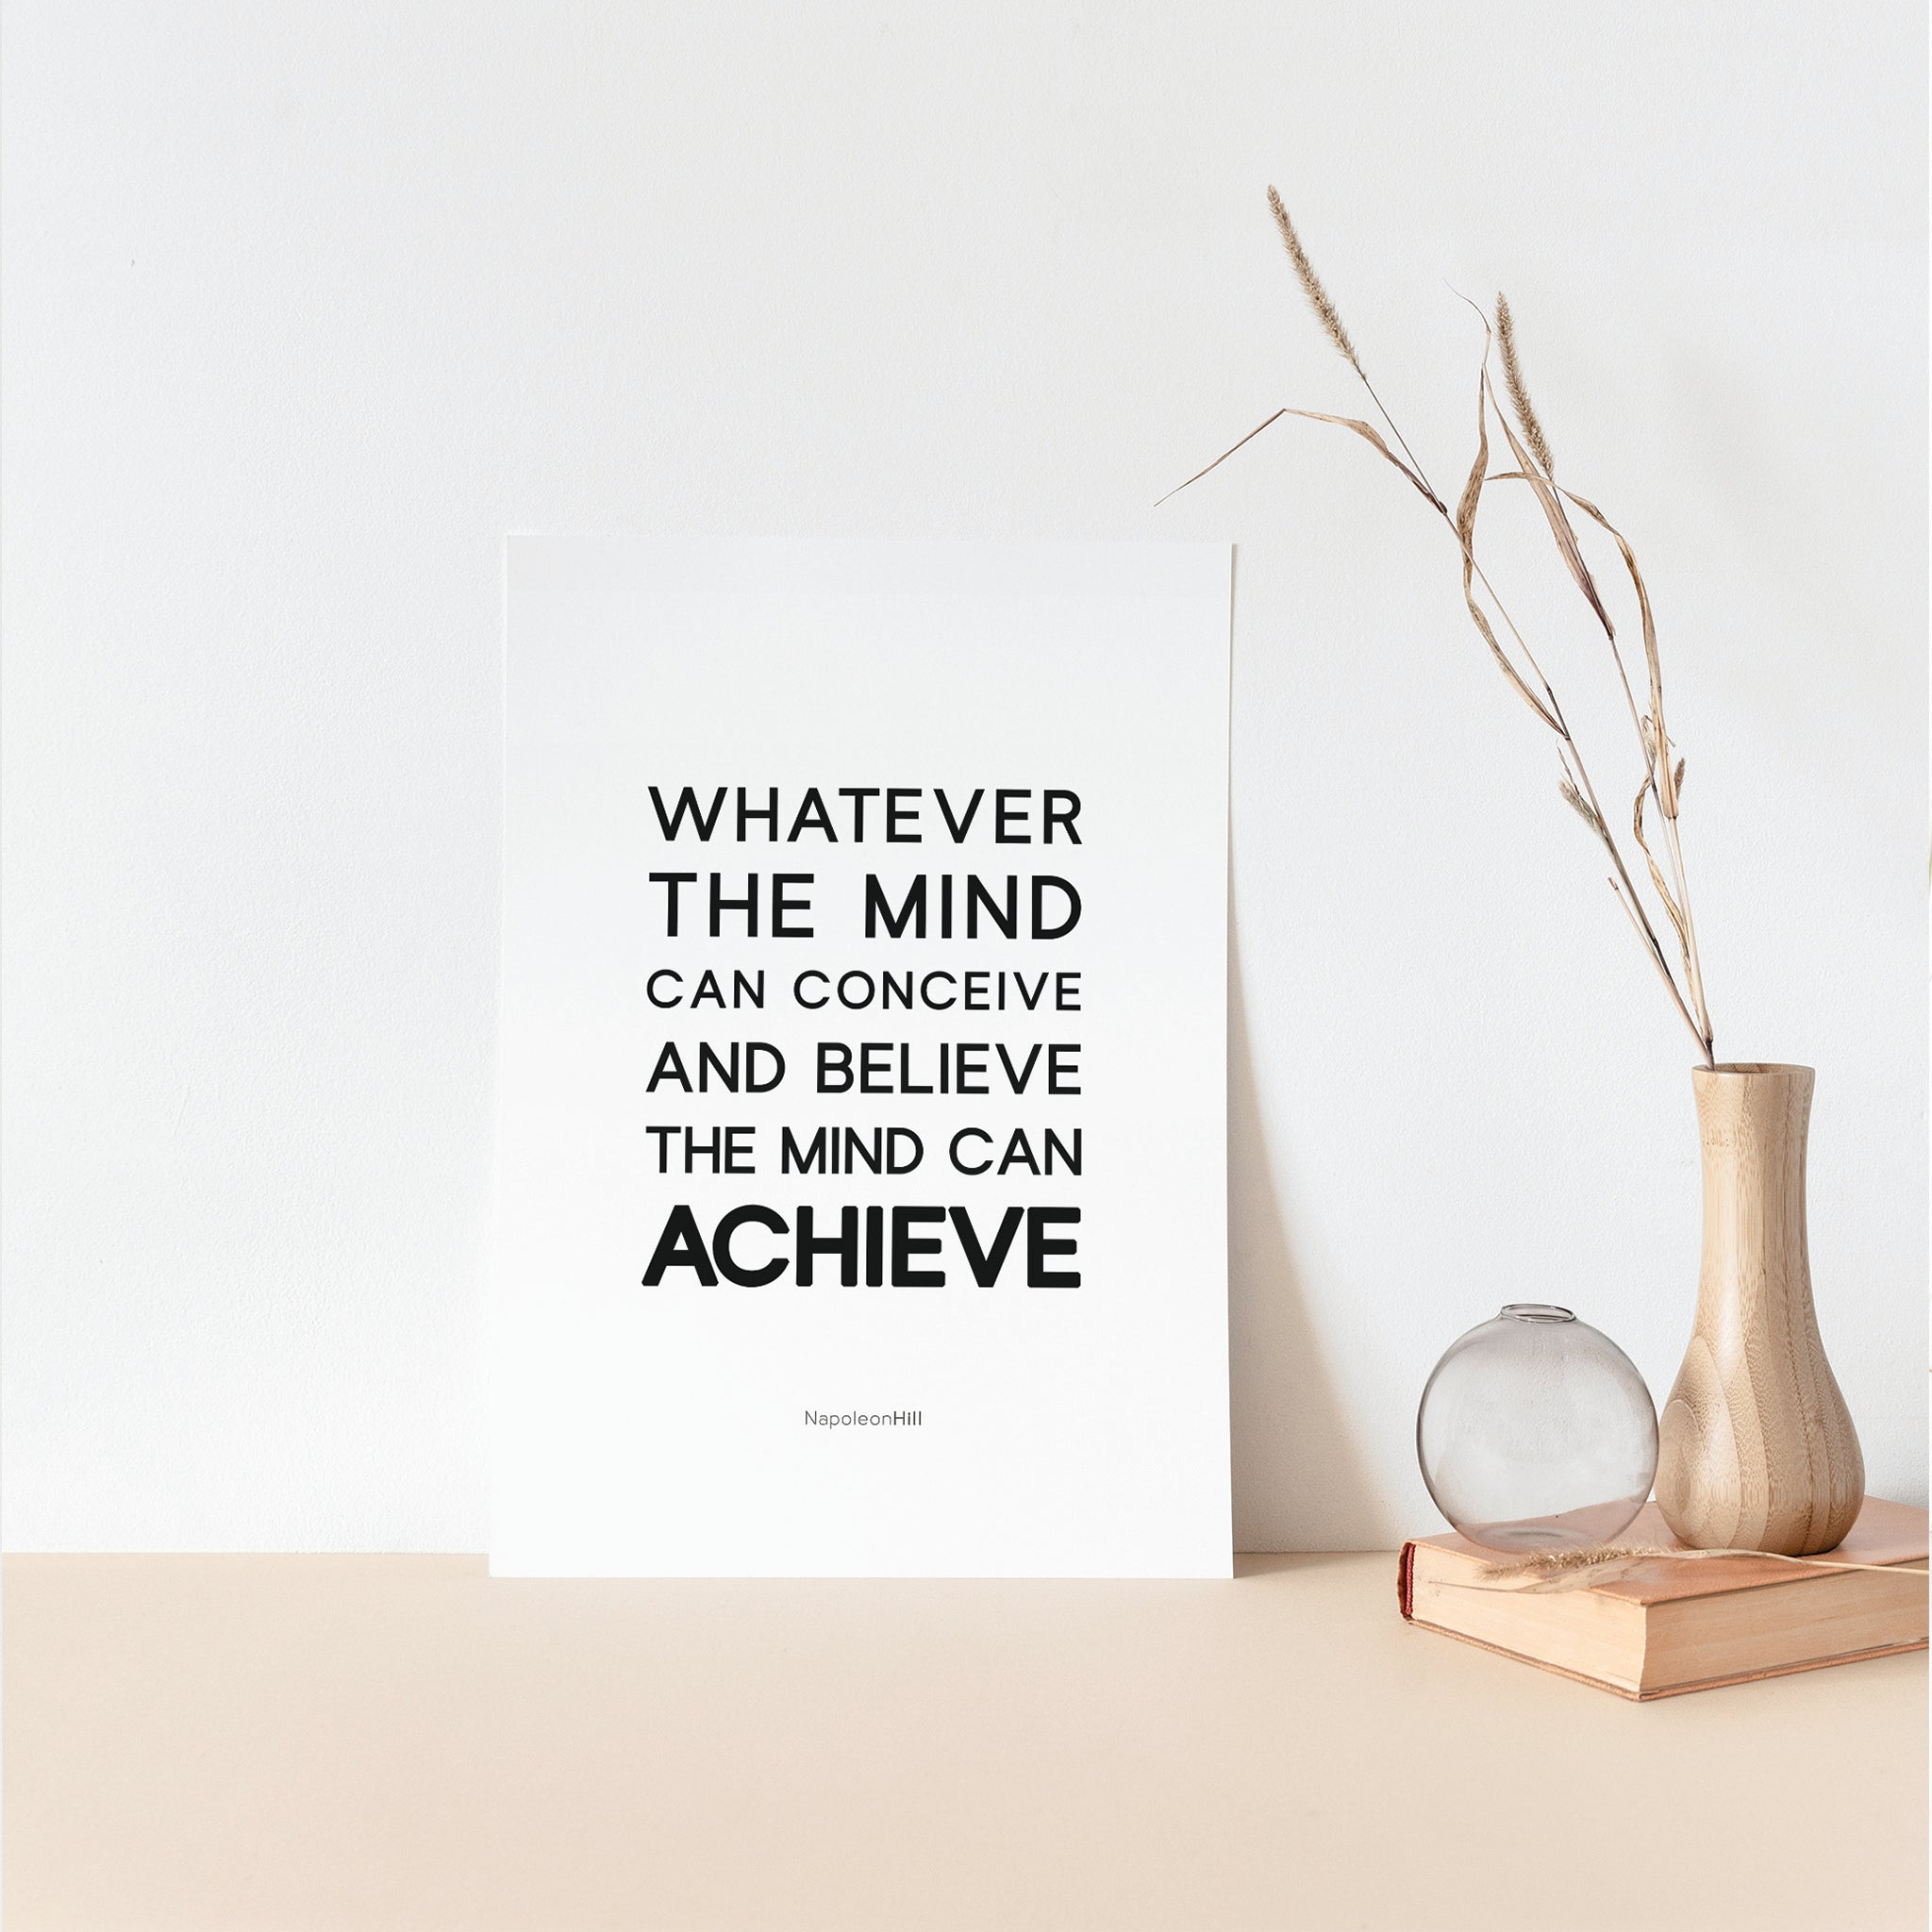 Whatever the mind can conceive and believe, the mind can achieve inspirational quote poster